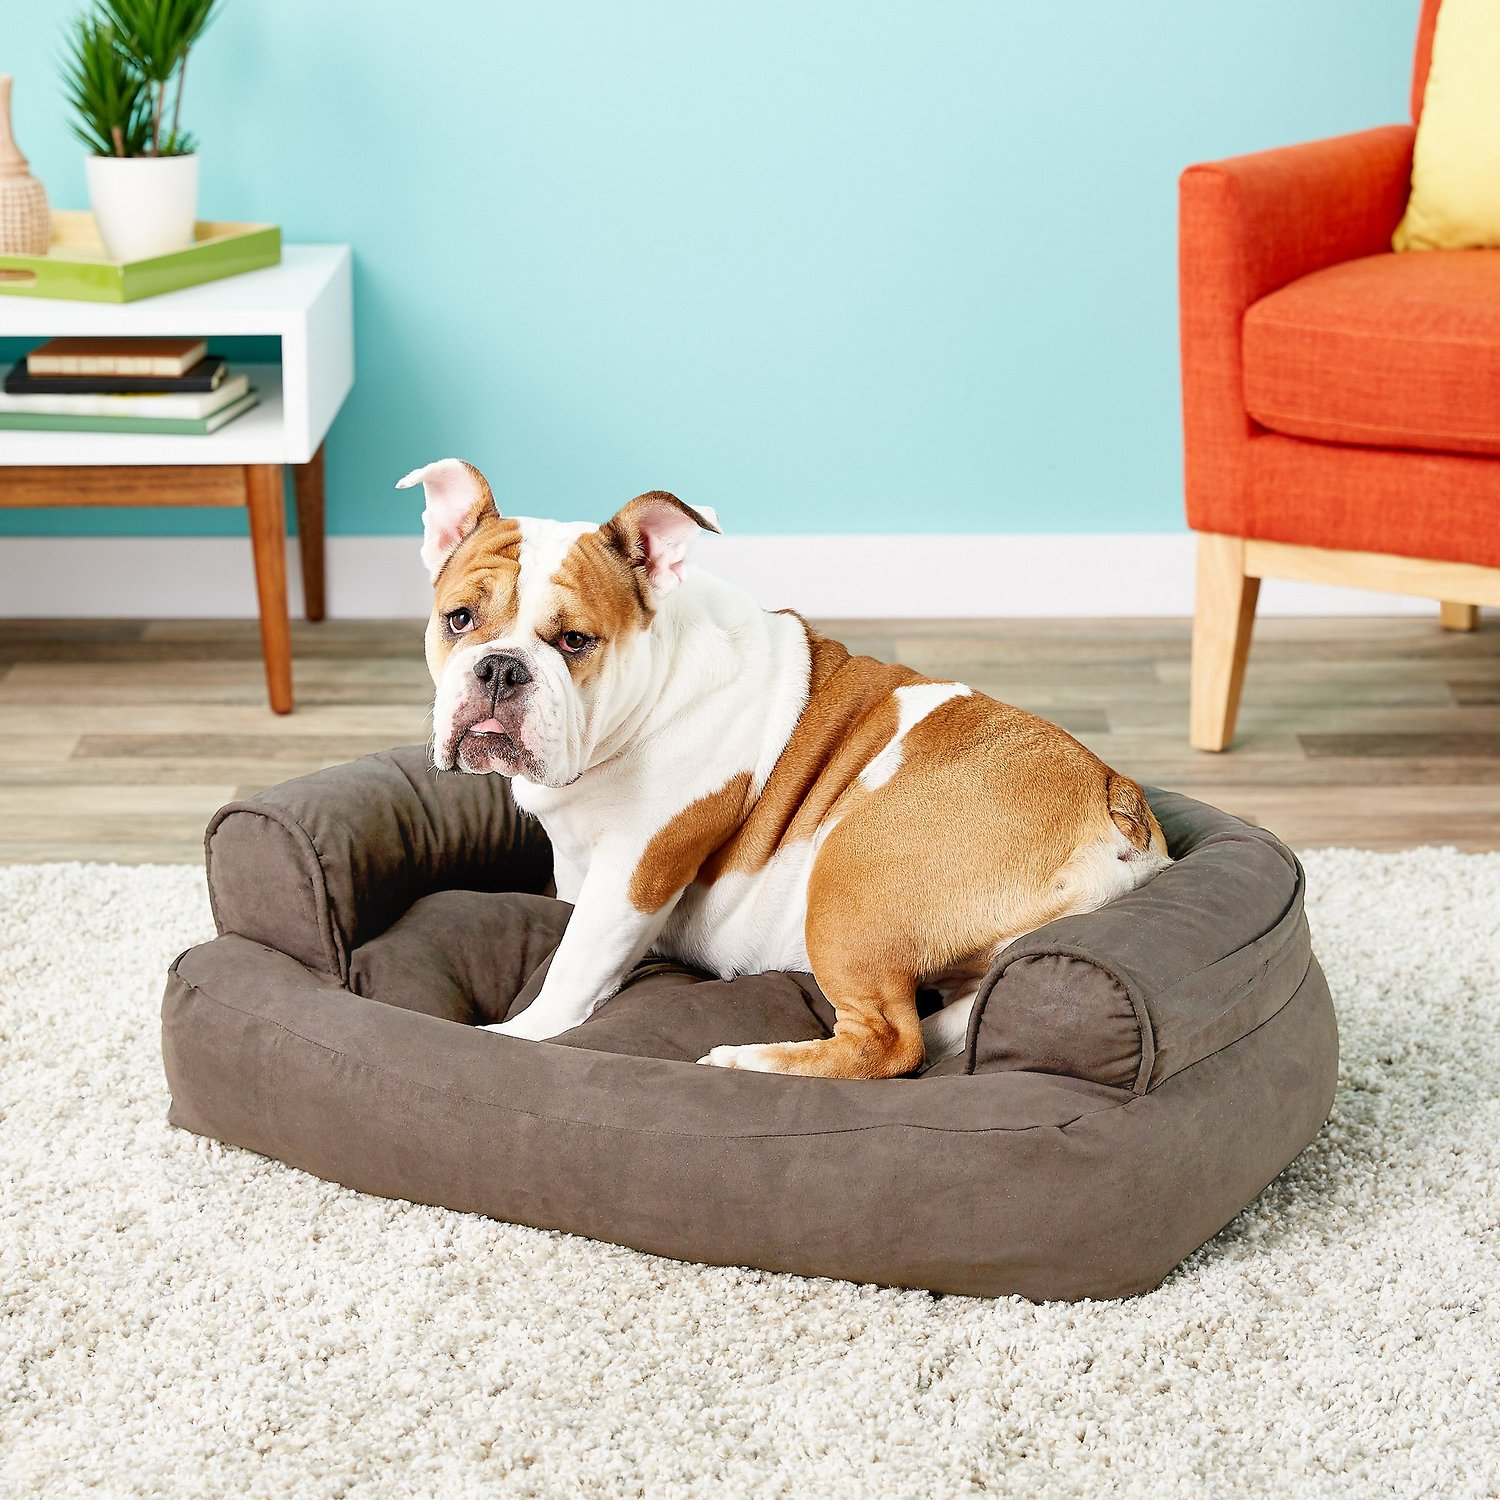 Snoozer Overstuffed Sofa Pet Bed Beauteous Overstuffed Luxury Dog Sofa Presenteddog Beds Comfort